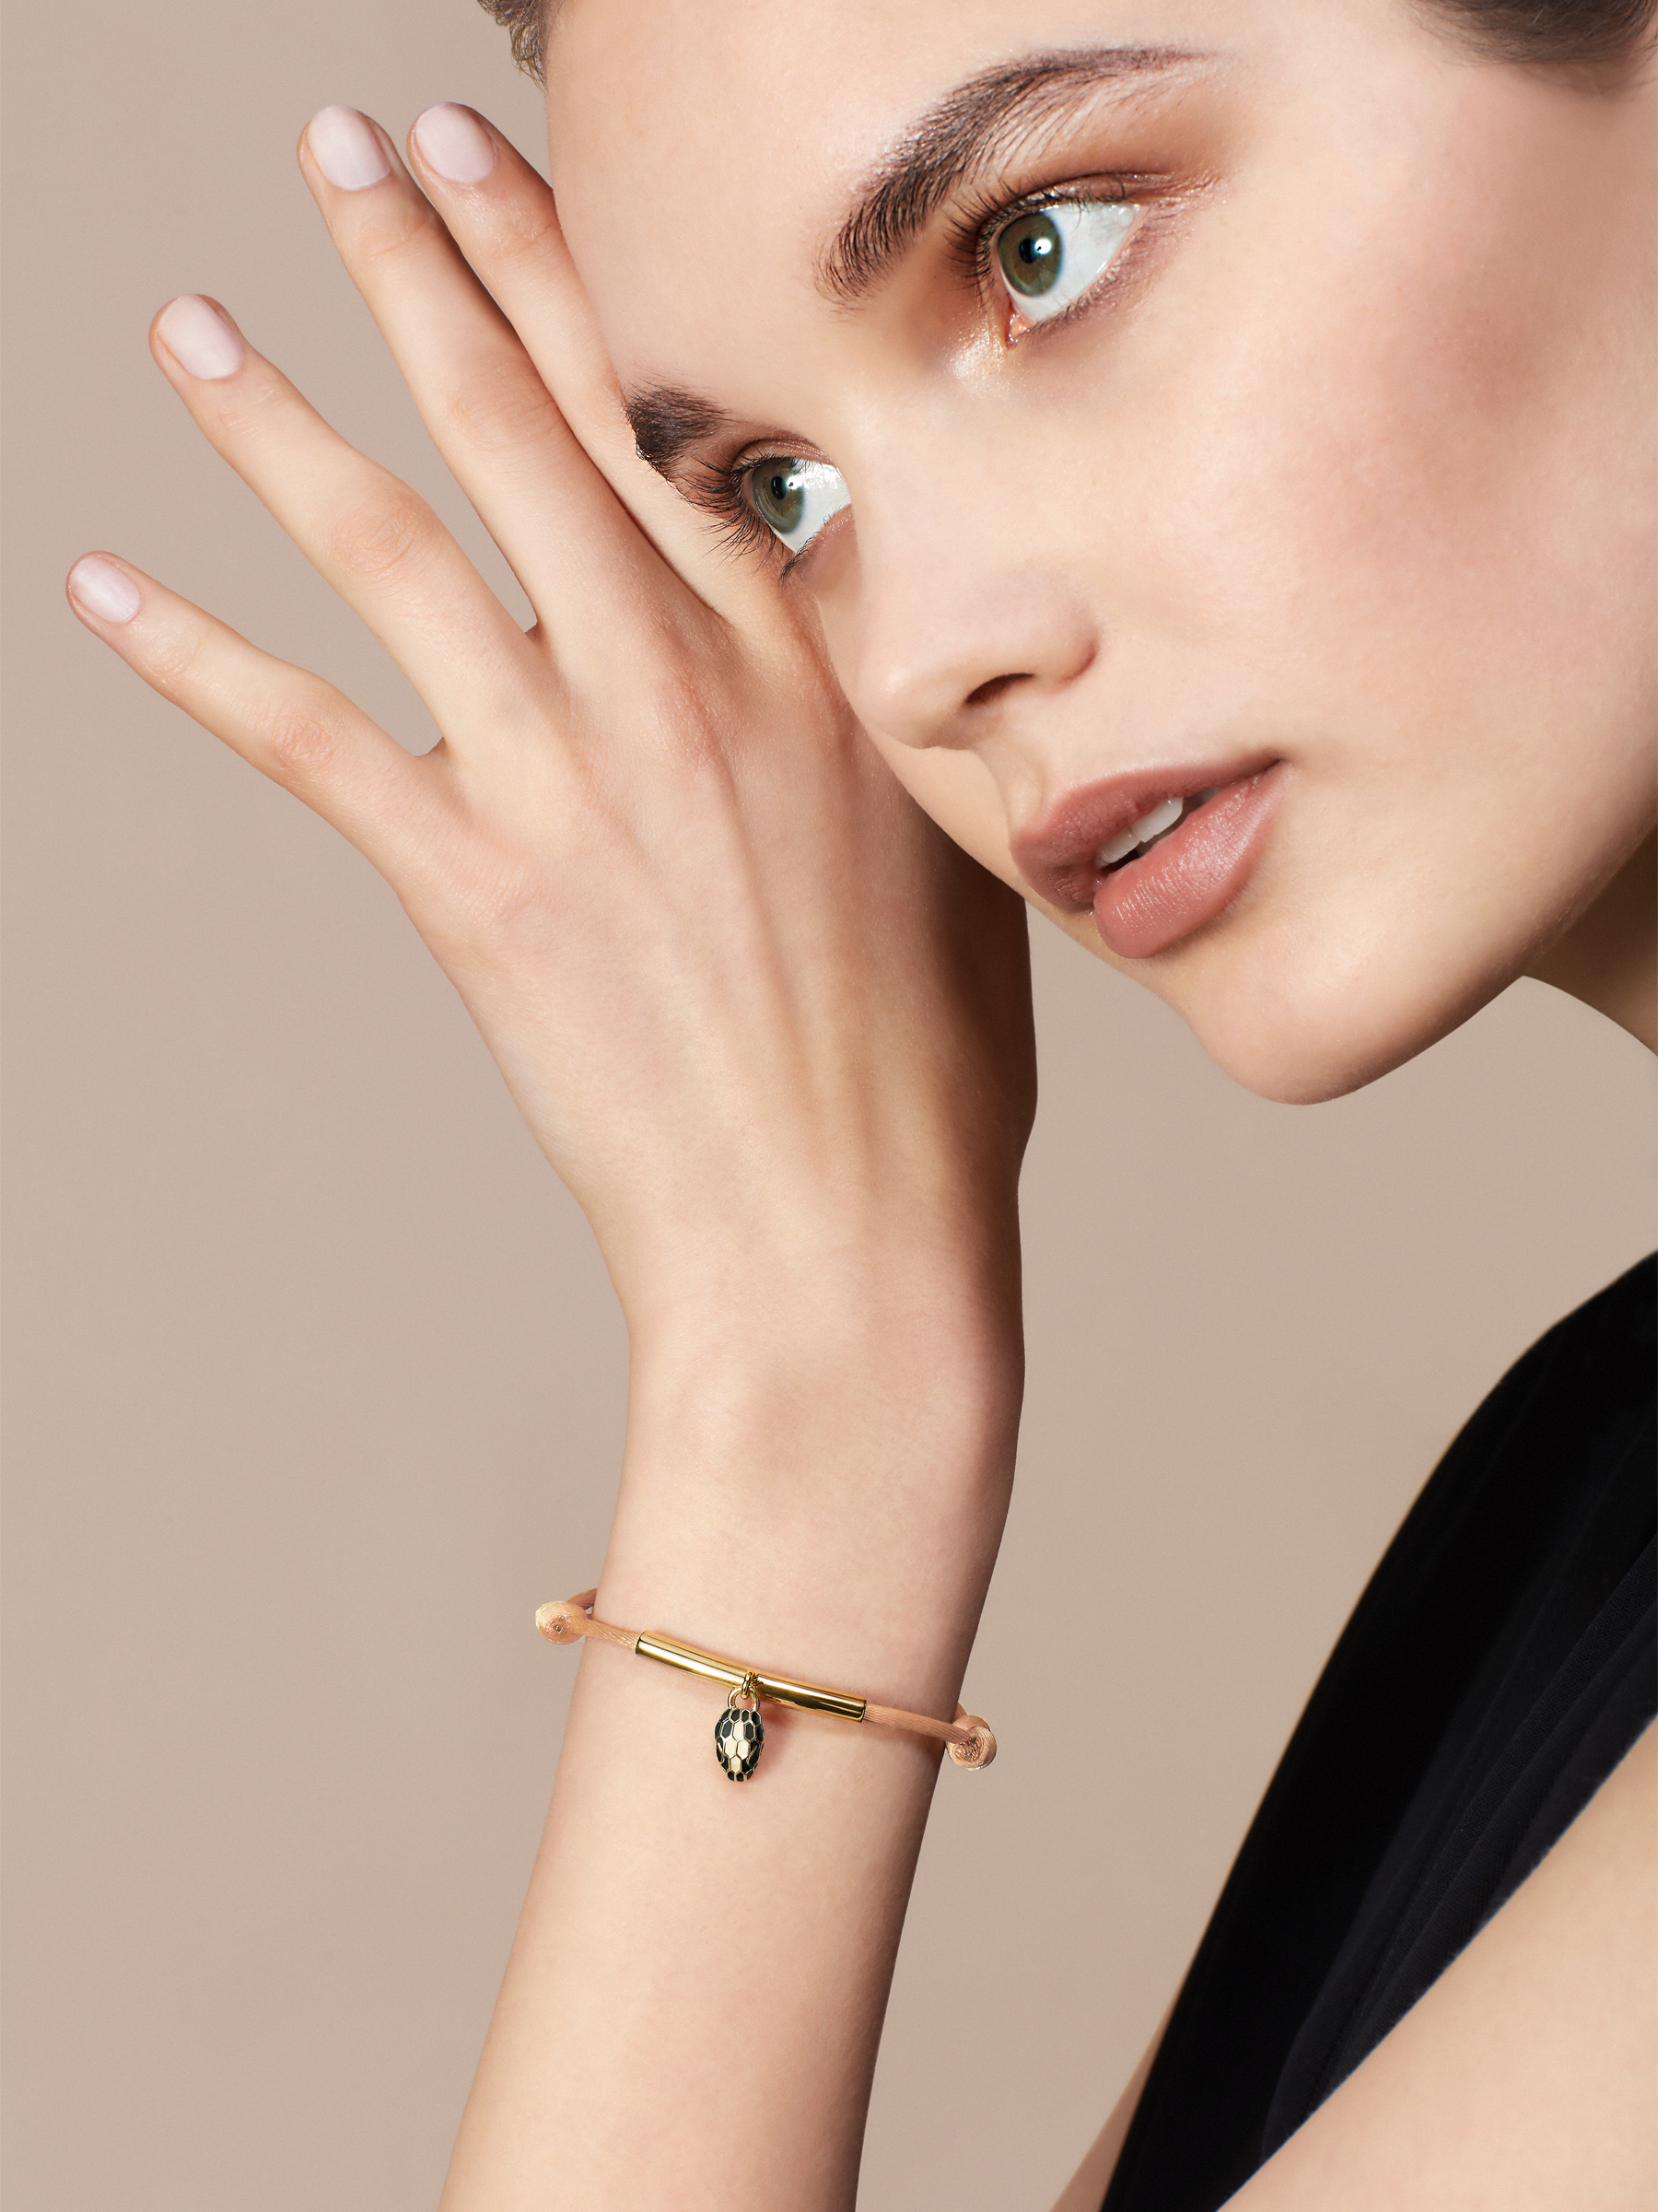 """""""Serpenti Forever"""" bracelet in Mimetic Jade green fabric, with a gold-plated brass plate. Iconic snakehead charm enameled in black and white agate, with seductive black enamel eyes. SERP-MINISTRINGa image 2"""